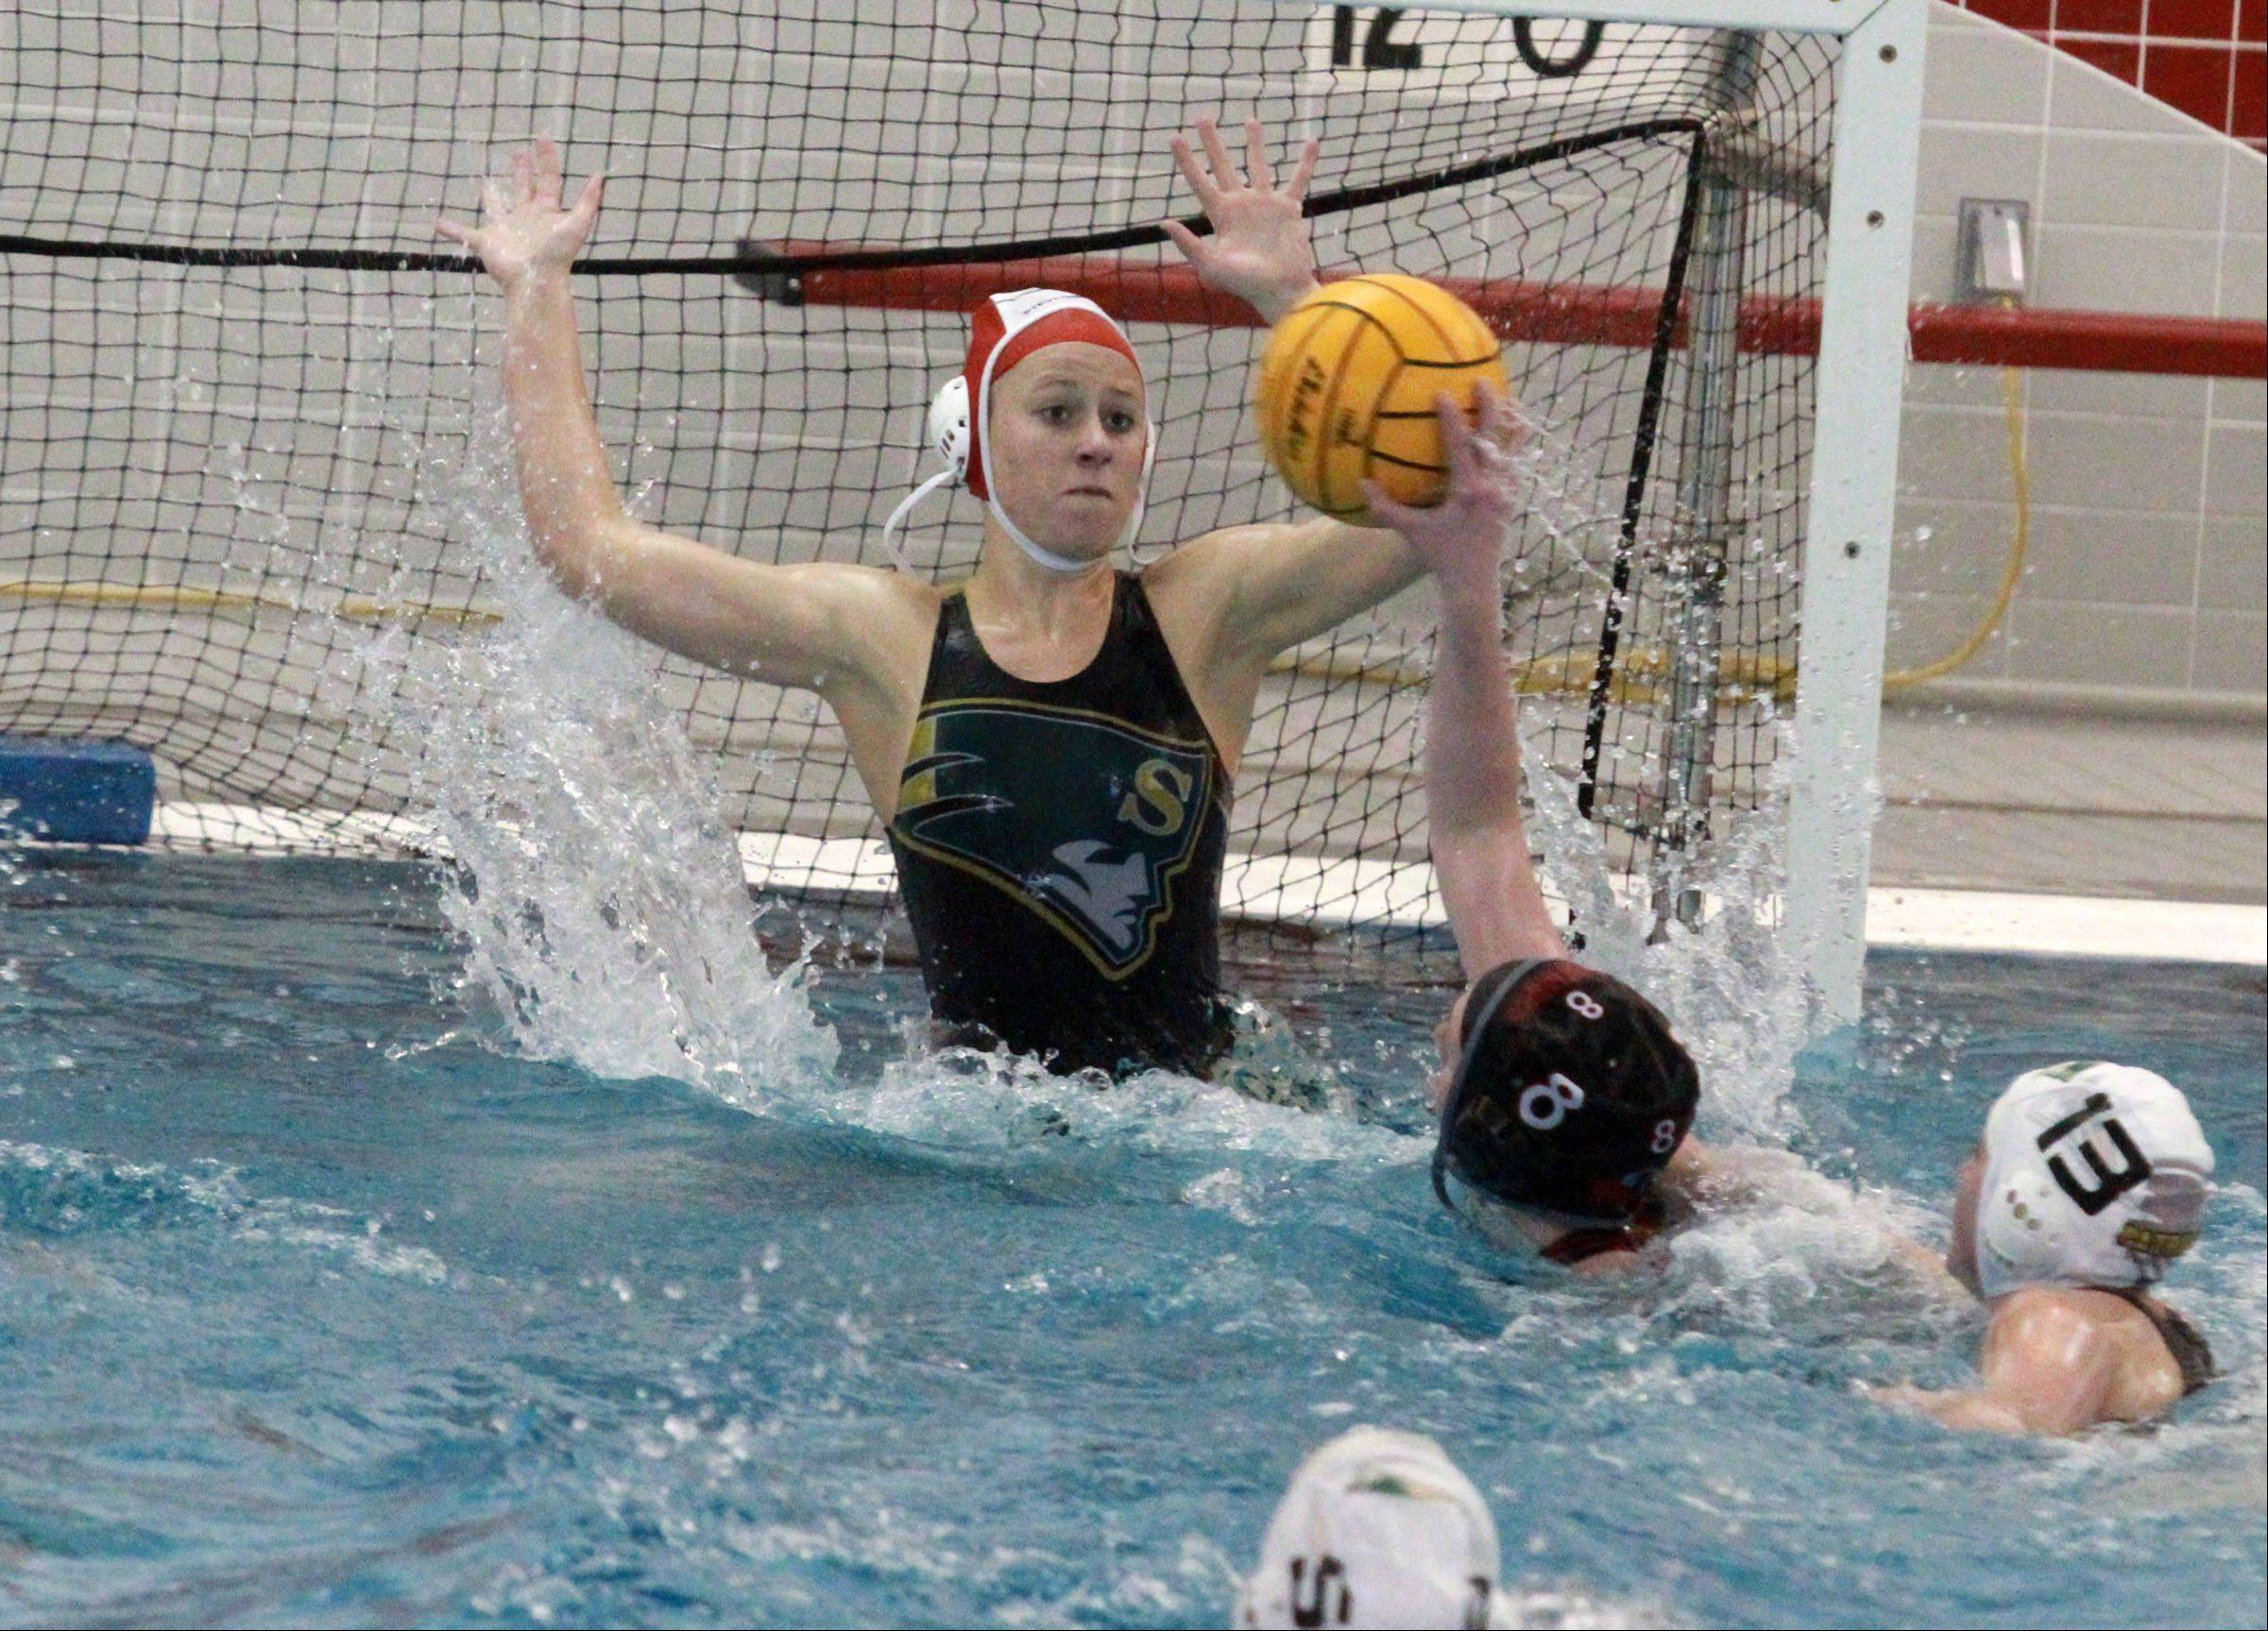 Mundelein's Allie Boothe scores against Stevenson goalie Becky Callen in the Mustangs' 6-5 victory in the Mundelein sectional championship Saturday.